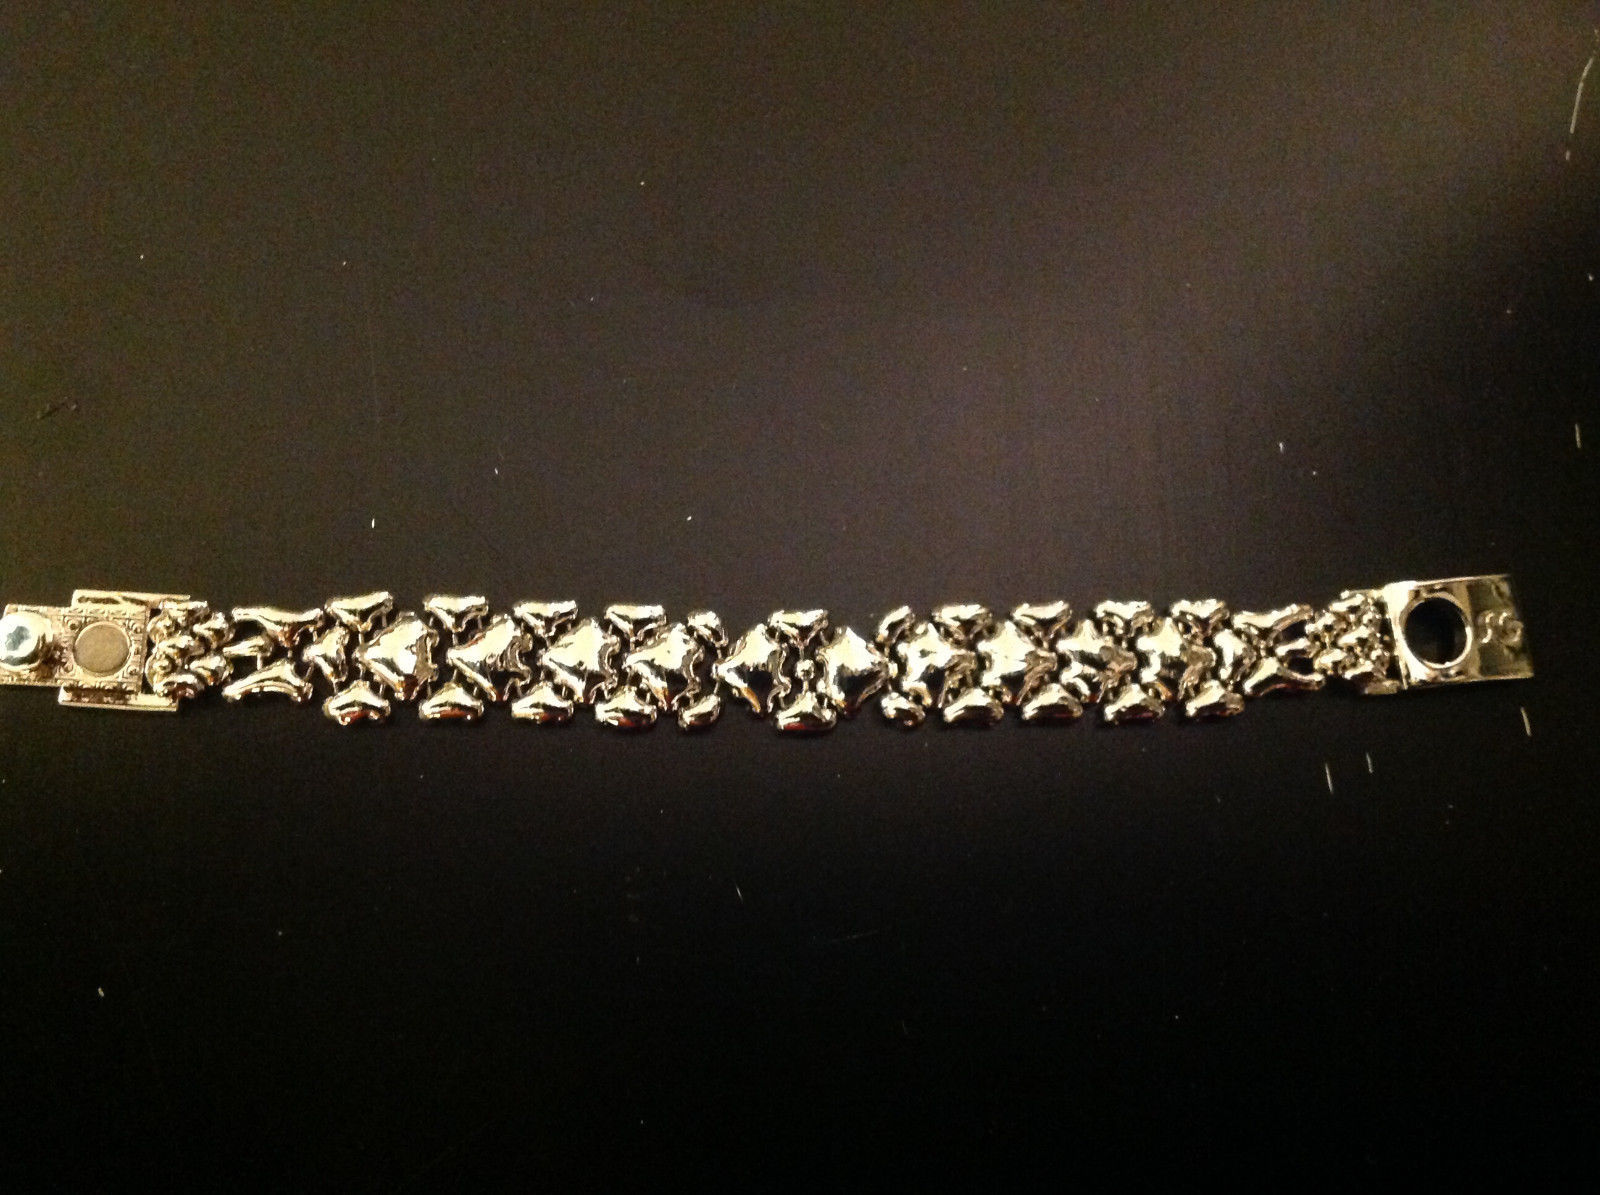 Patterned Nickel Chrome SG Liquid Celebrity Approved Bracelet 7.5 inches